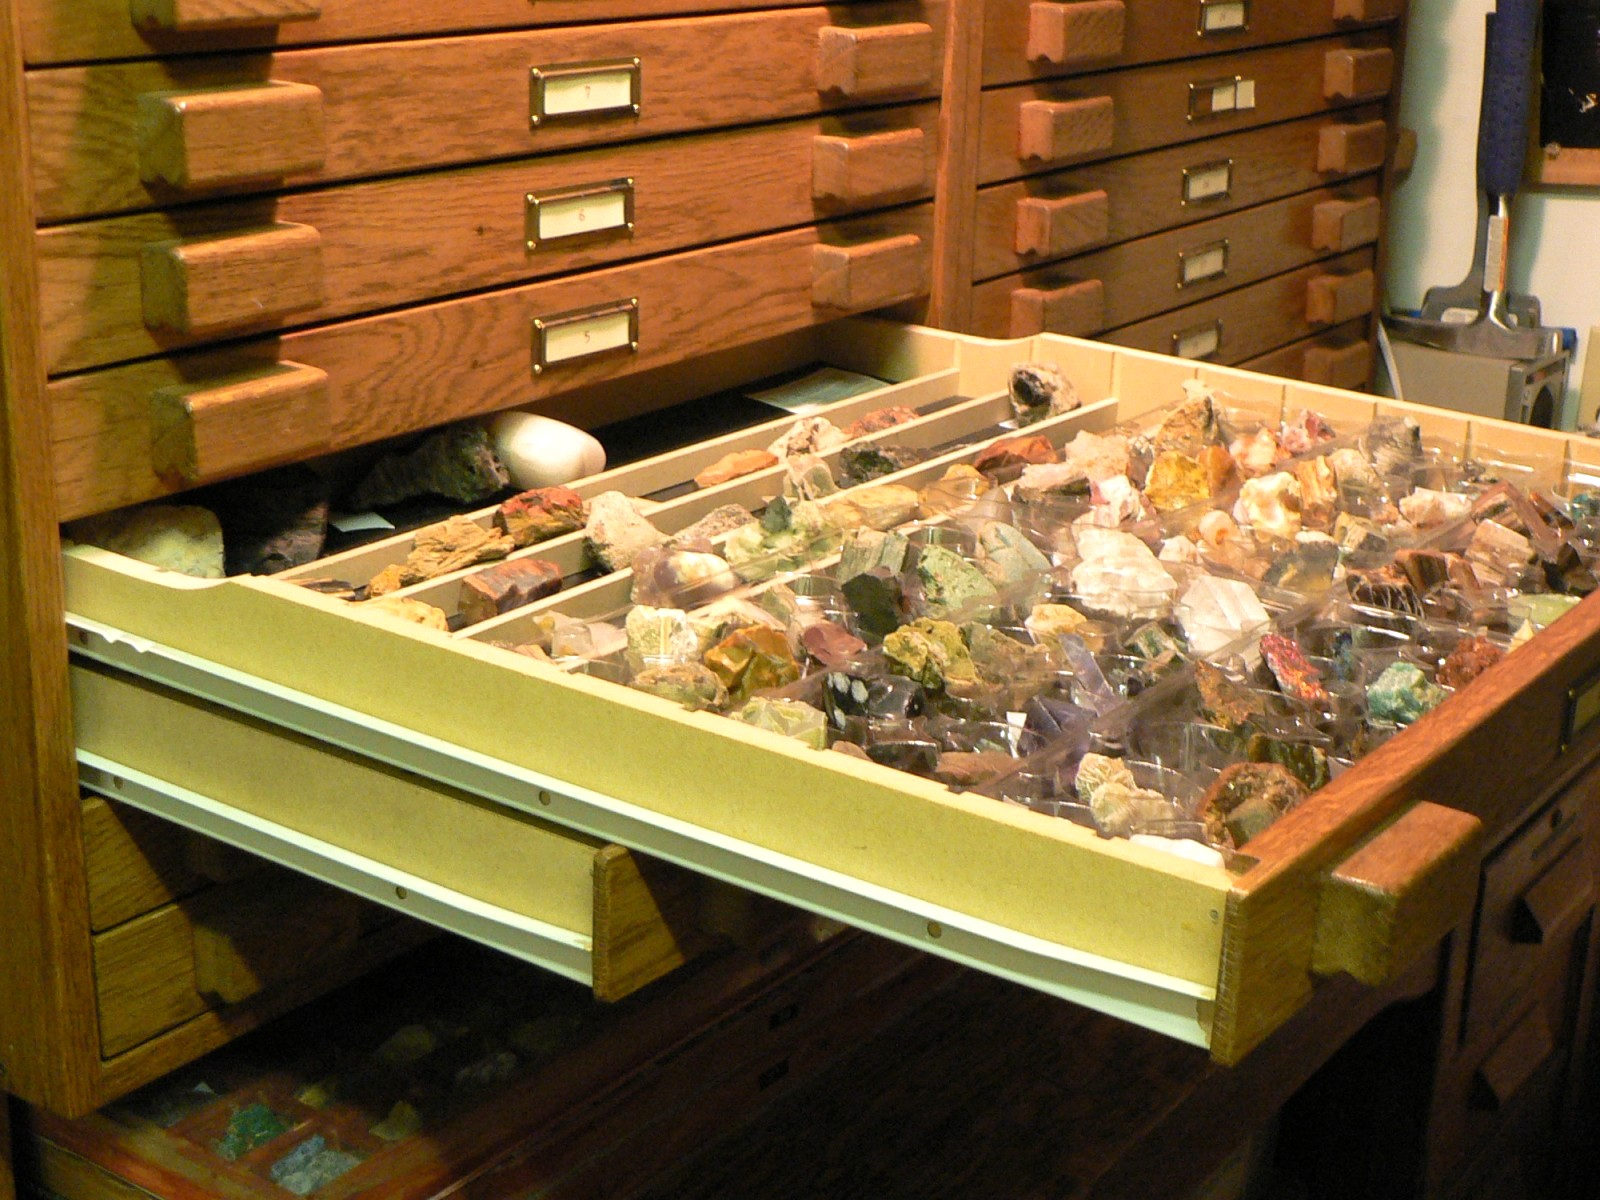 A Rock And Mineral Cabinet Using The Storage And Display